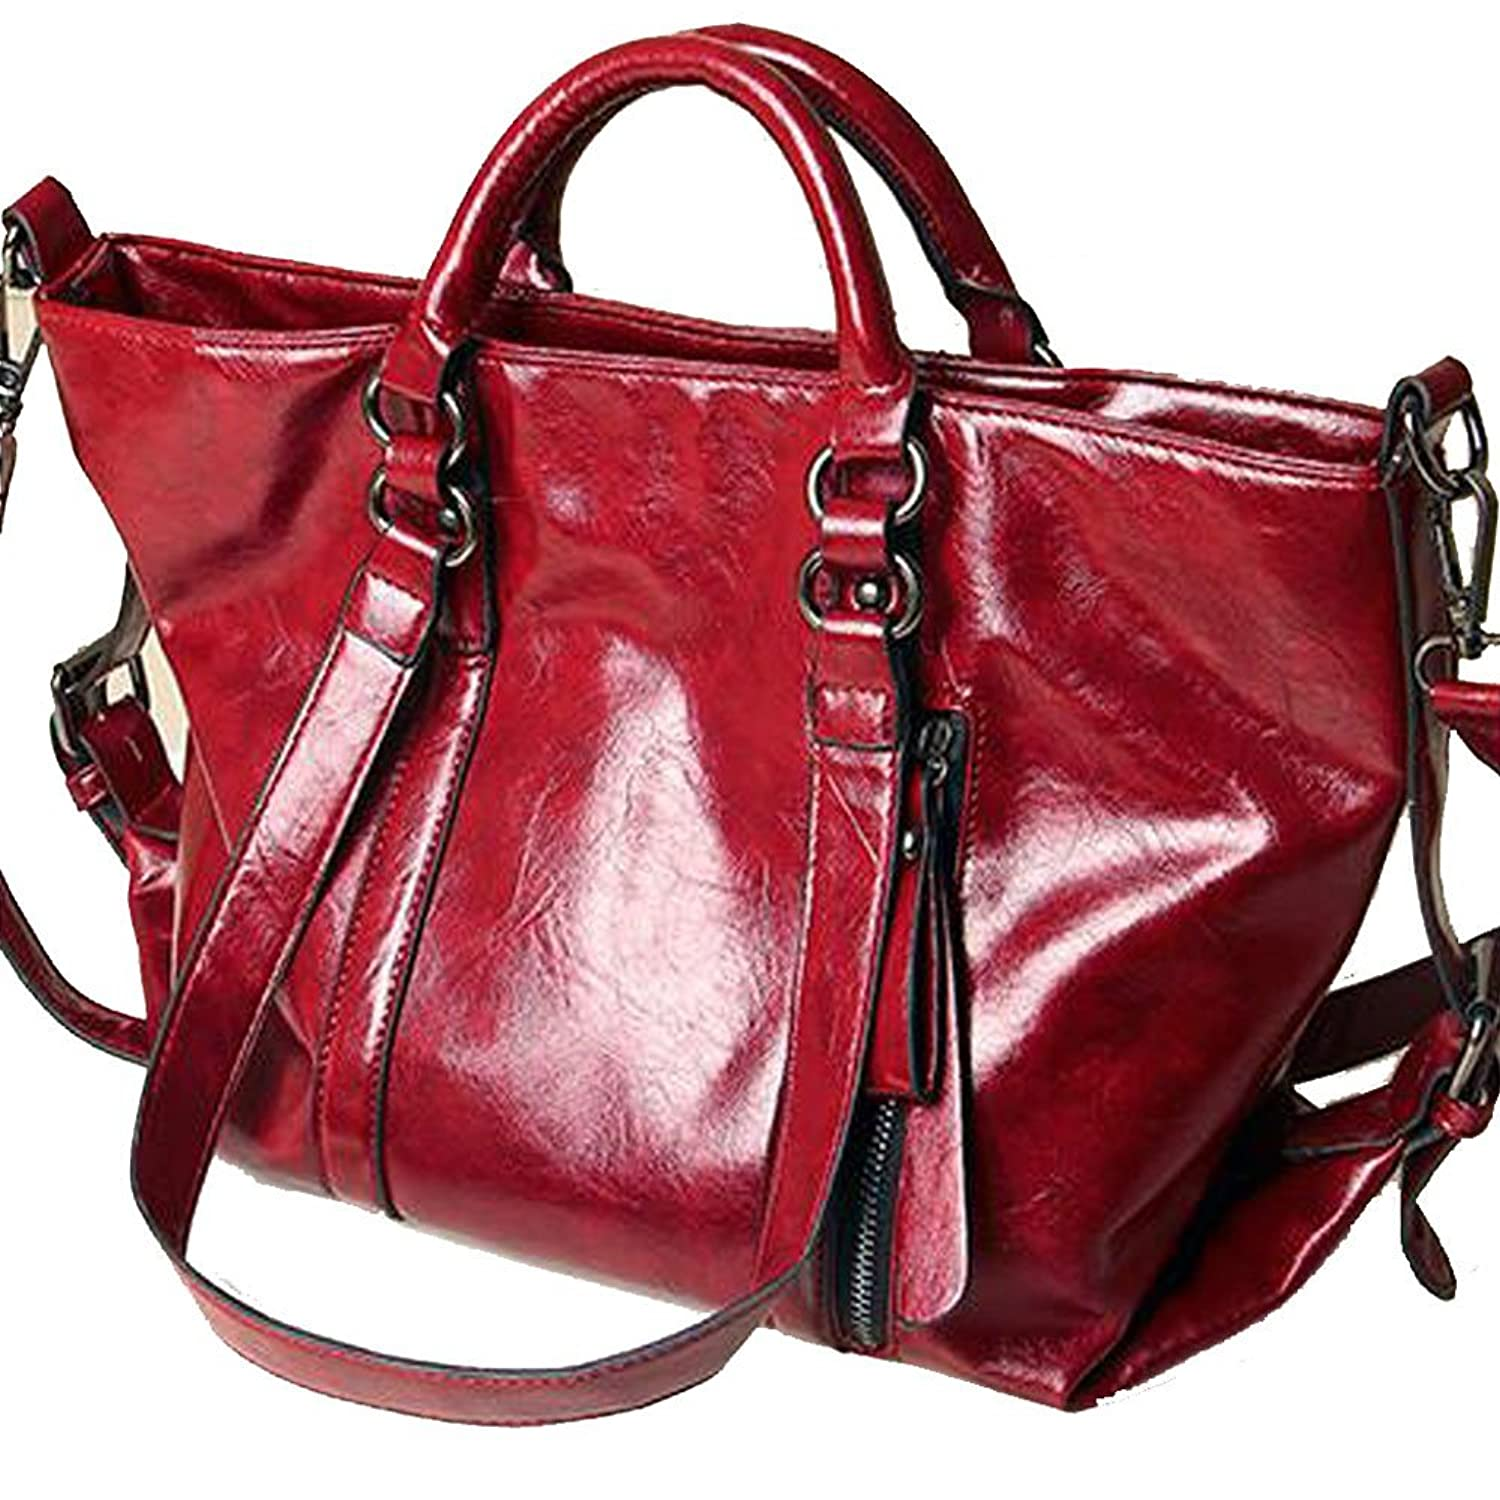 SNUG STAR Retro Style Wax oil Cowhide Shoulder Bag Cross Body Bag Satchel Tote Handbag for Women